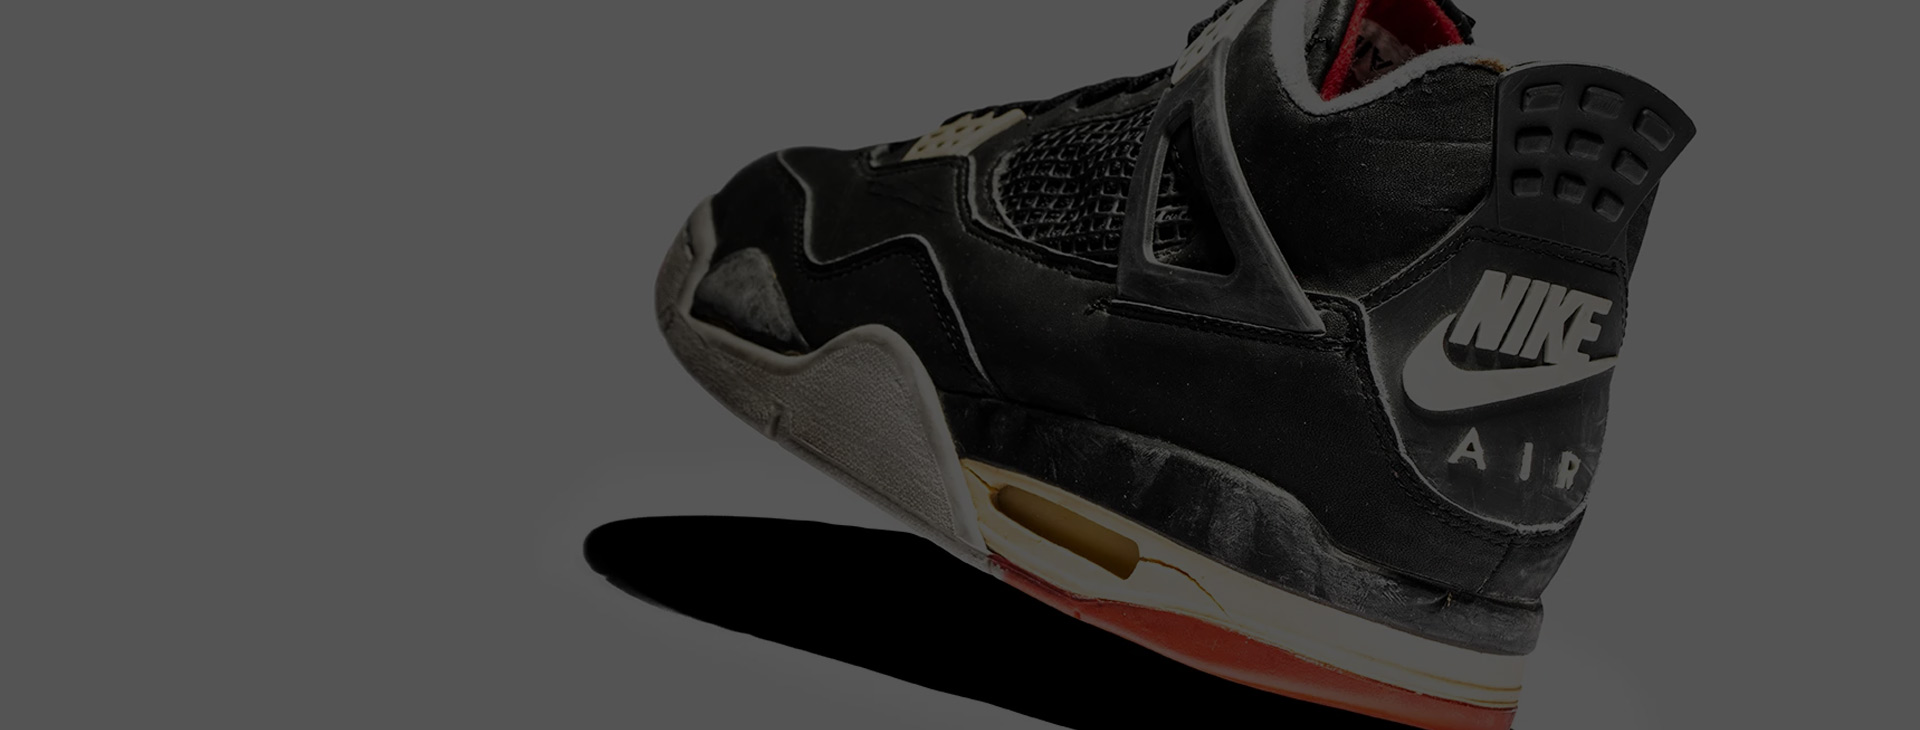 "separation shoes ebd83 a15c7 Six Things You May Or May Not Know About The Air Jordan 4 ""Bred"""